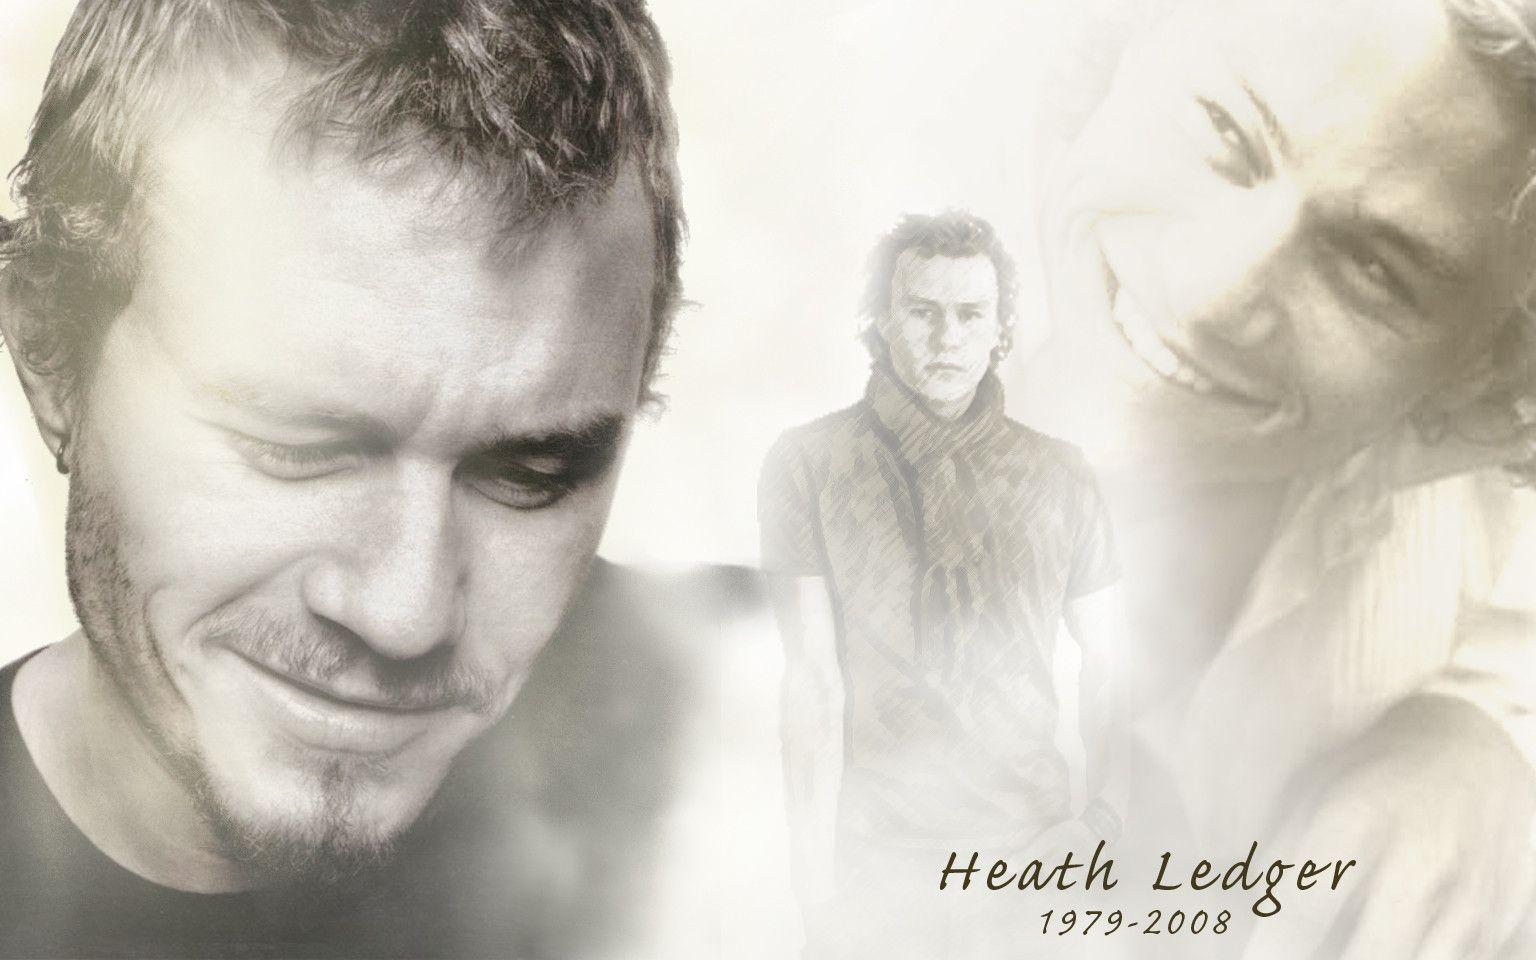 Heath Ledger Wallpapers (Wallpaper 1-15 of 15)